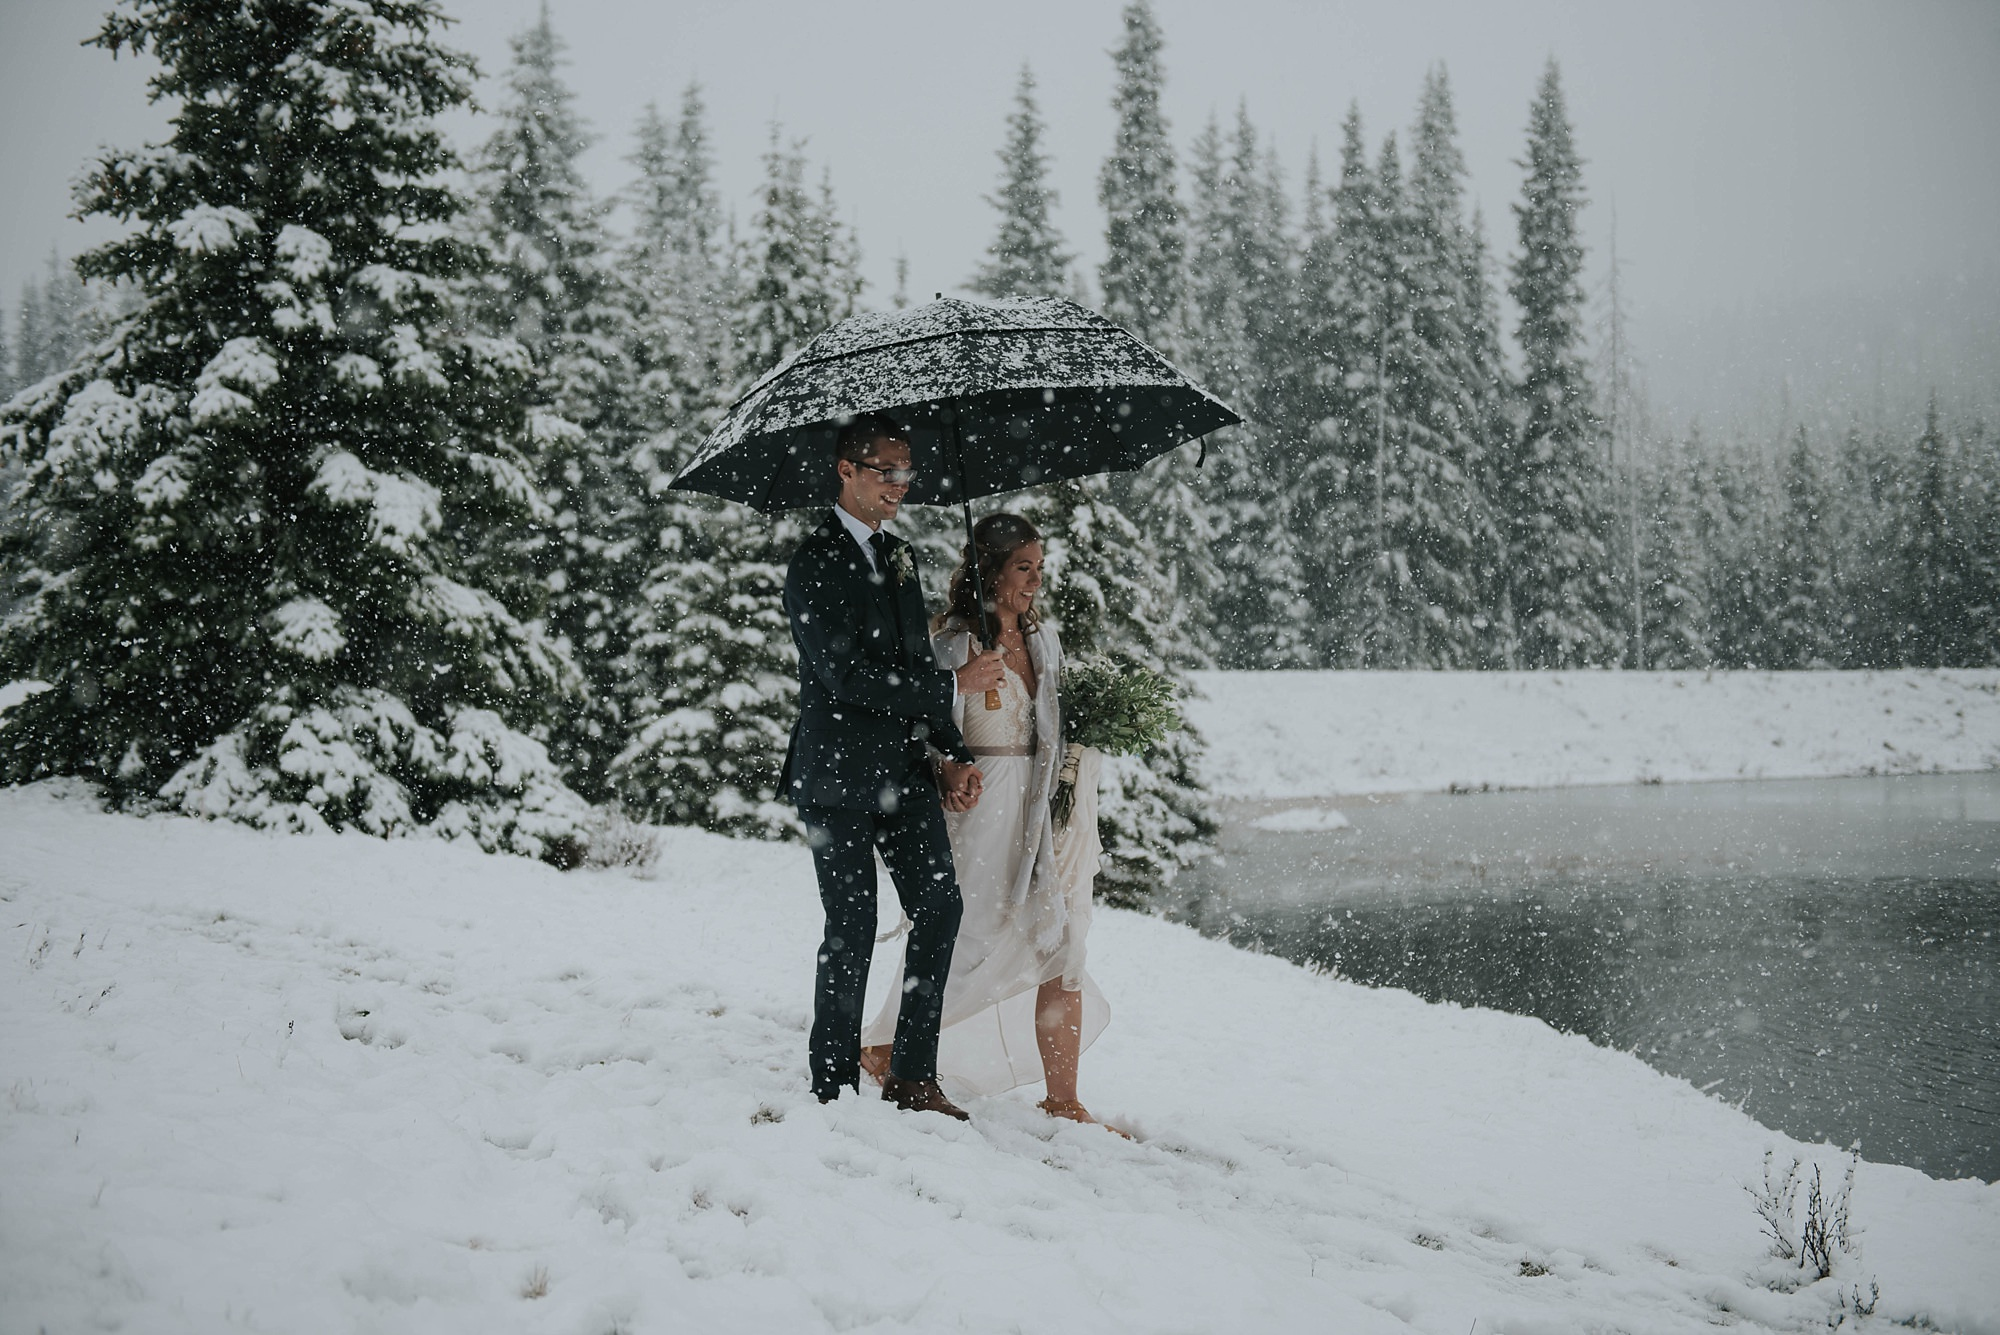 intimate wedding ceremony with bride and groom in the snow in winter mountain elopement